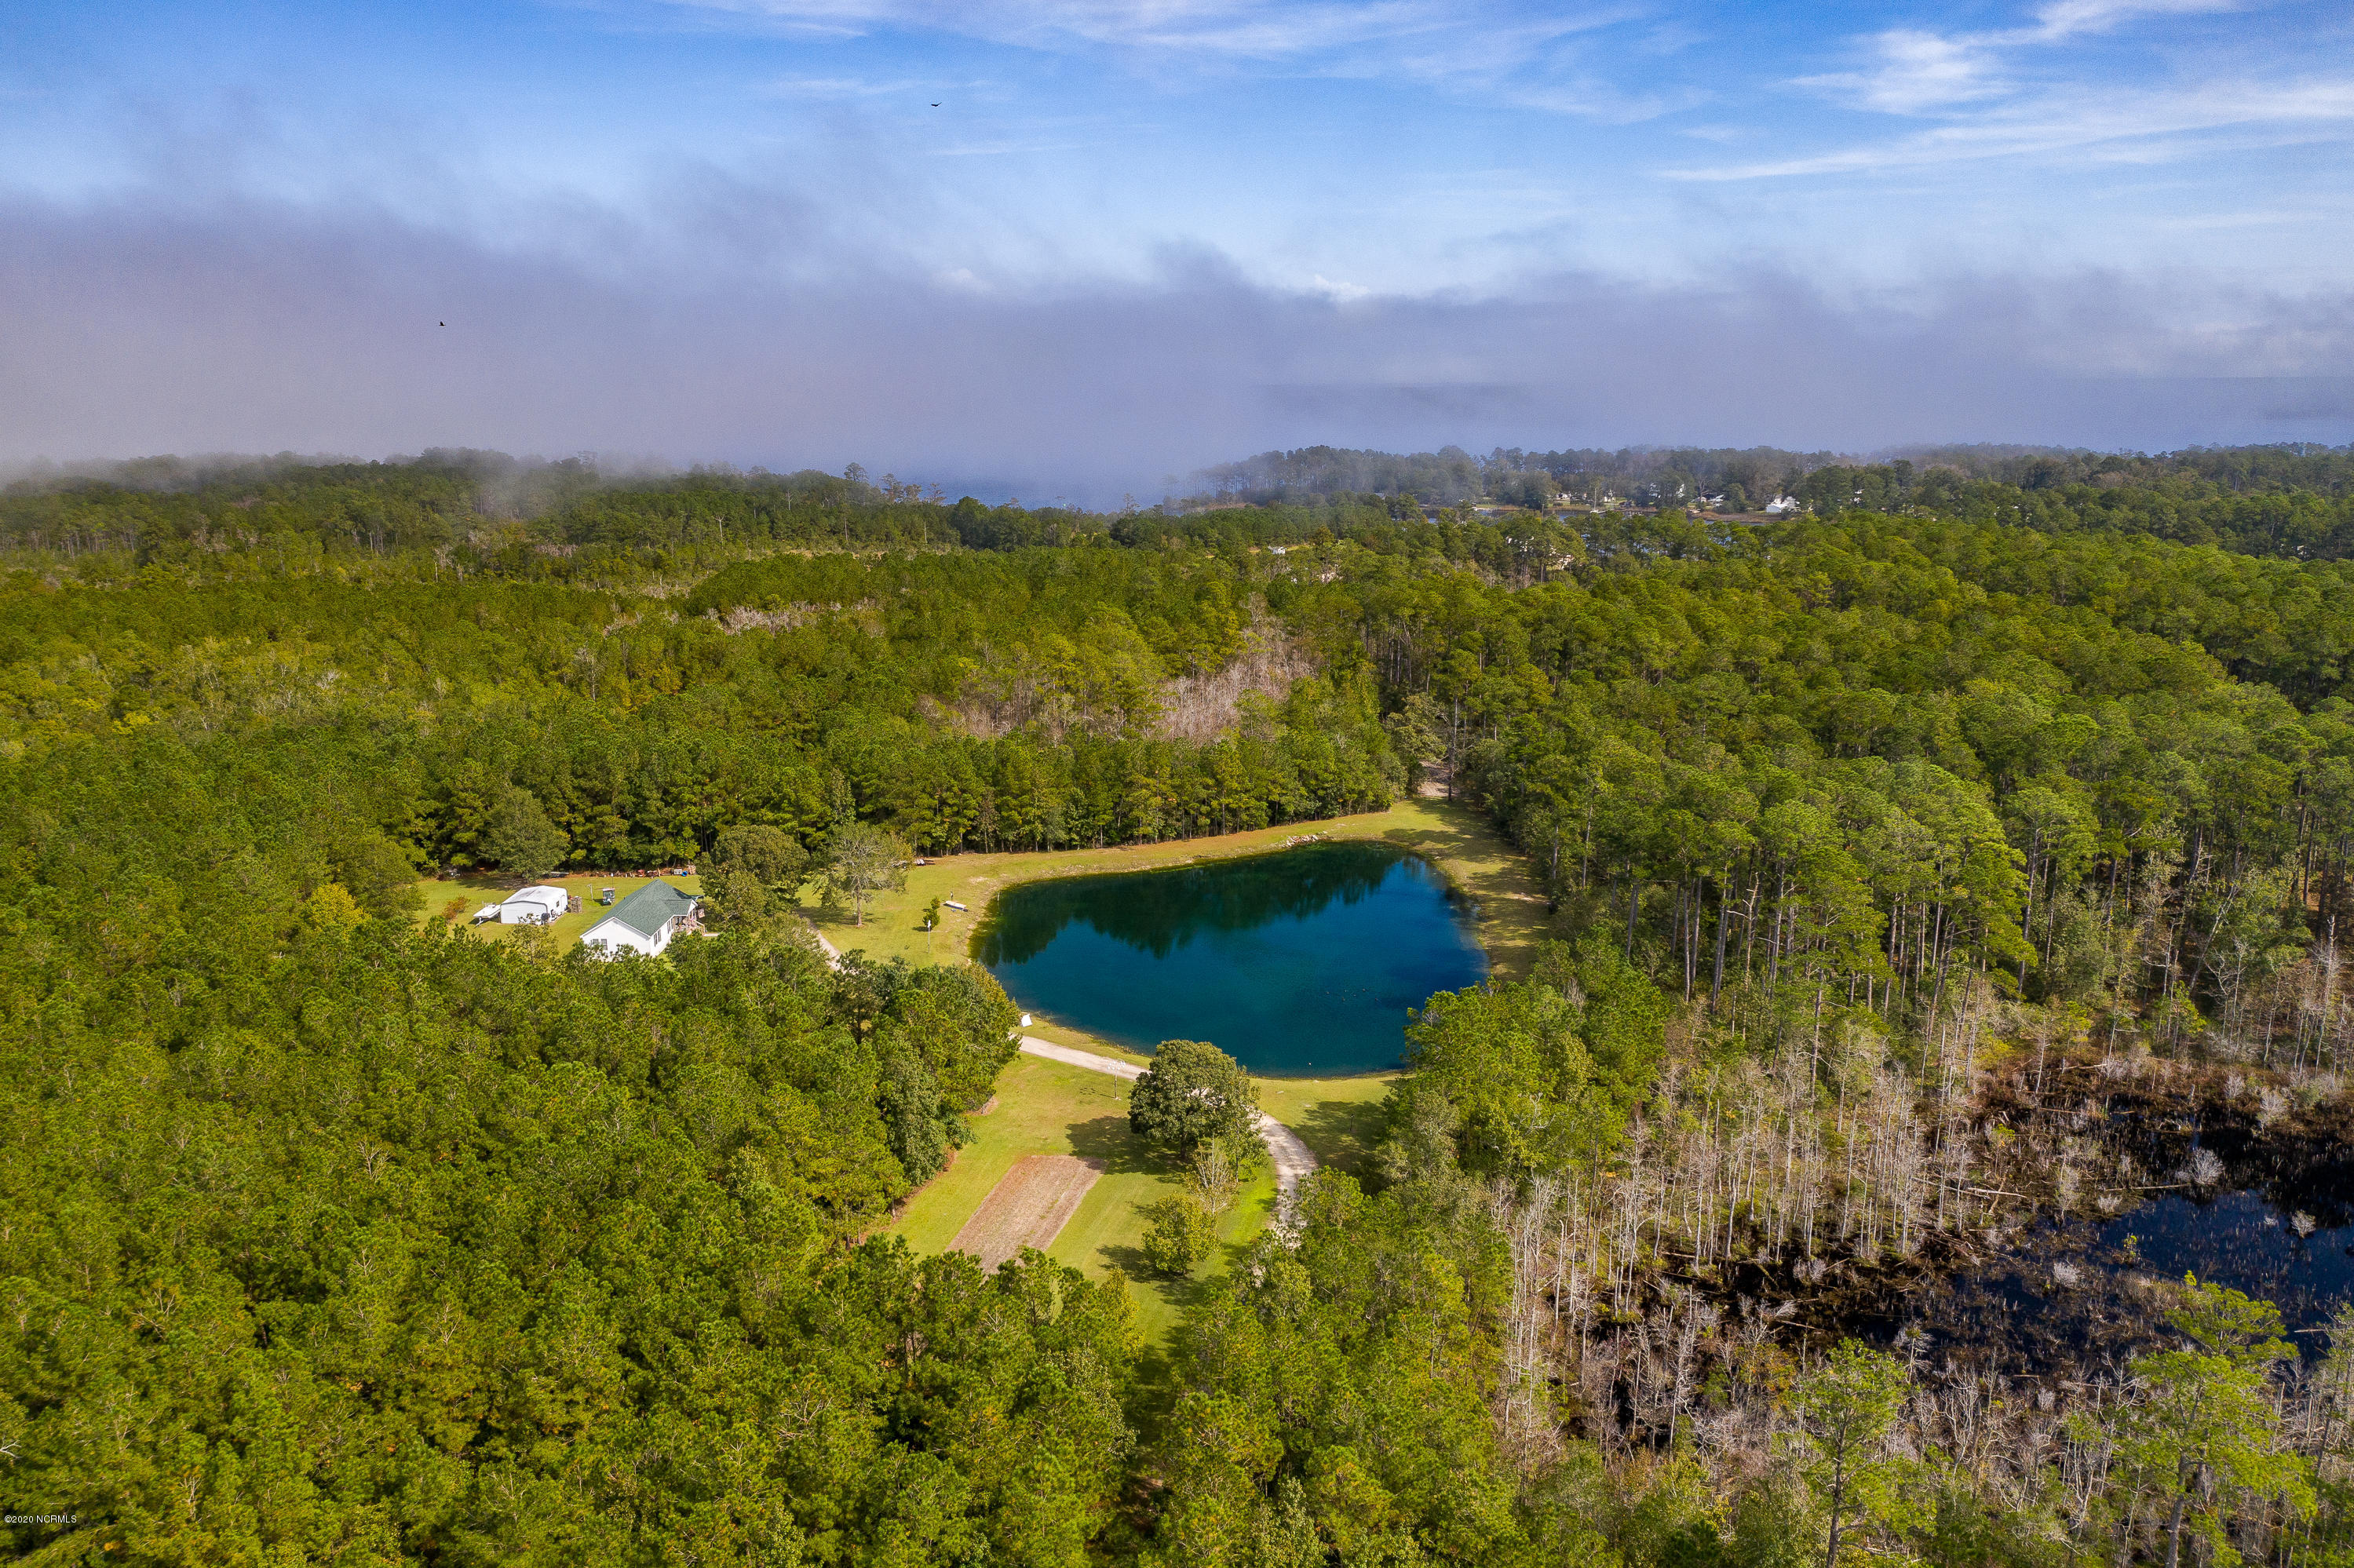 1285 River Road, Beaufort, North Carolina 28516, 3 Bedrooms Bedrooms, 3 Rooms Rooms,2 BathroomsBathrooms,Single family residence,For sale,River,100228360